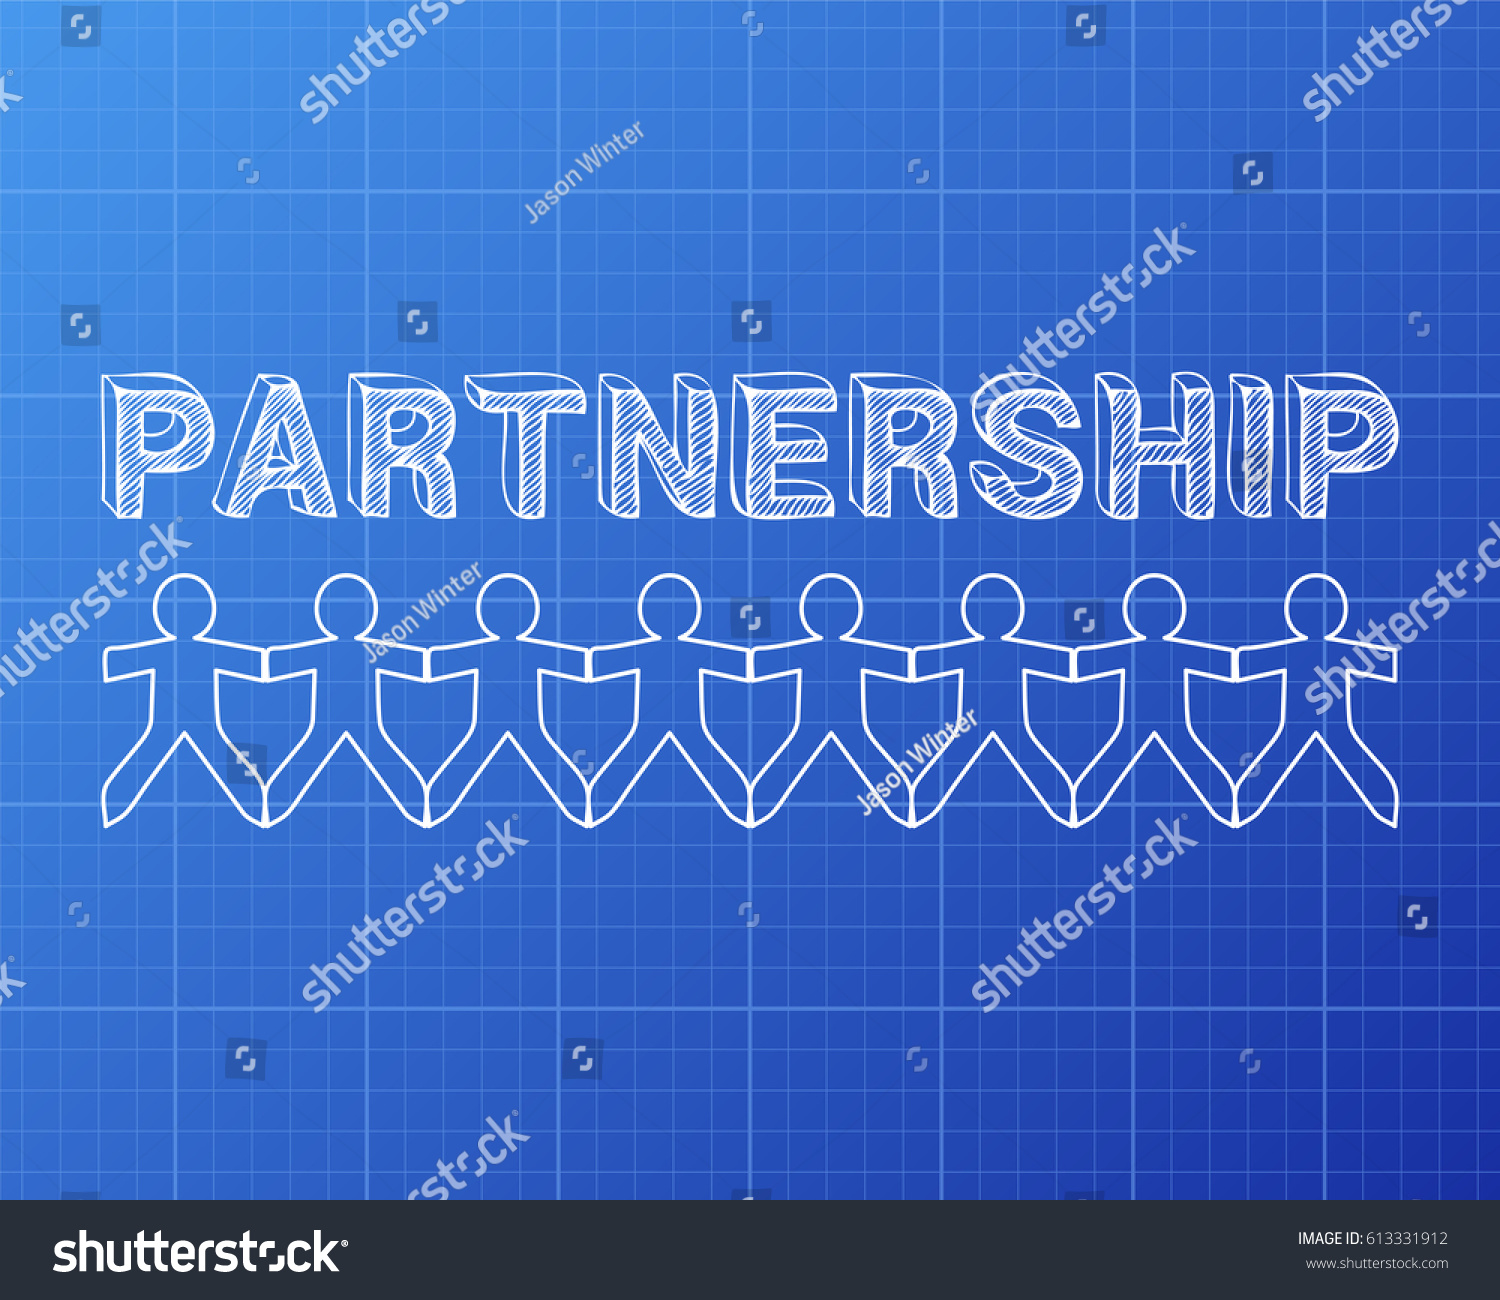 Partnership text hand drawn paper people stock vector hd royalty partnership text hand drawn with paper people on blueprint background malvernweather Choice Image